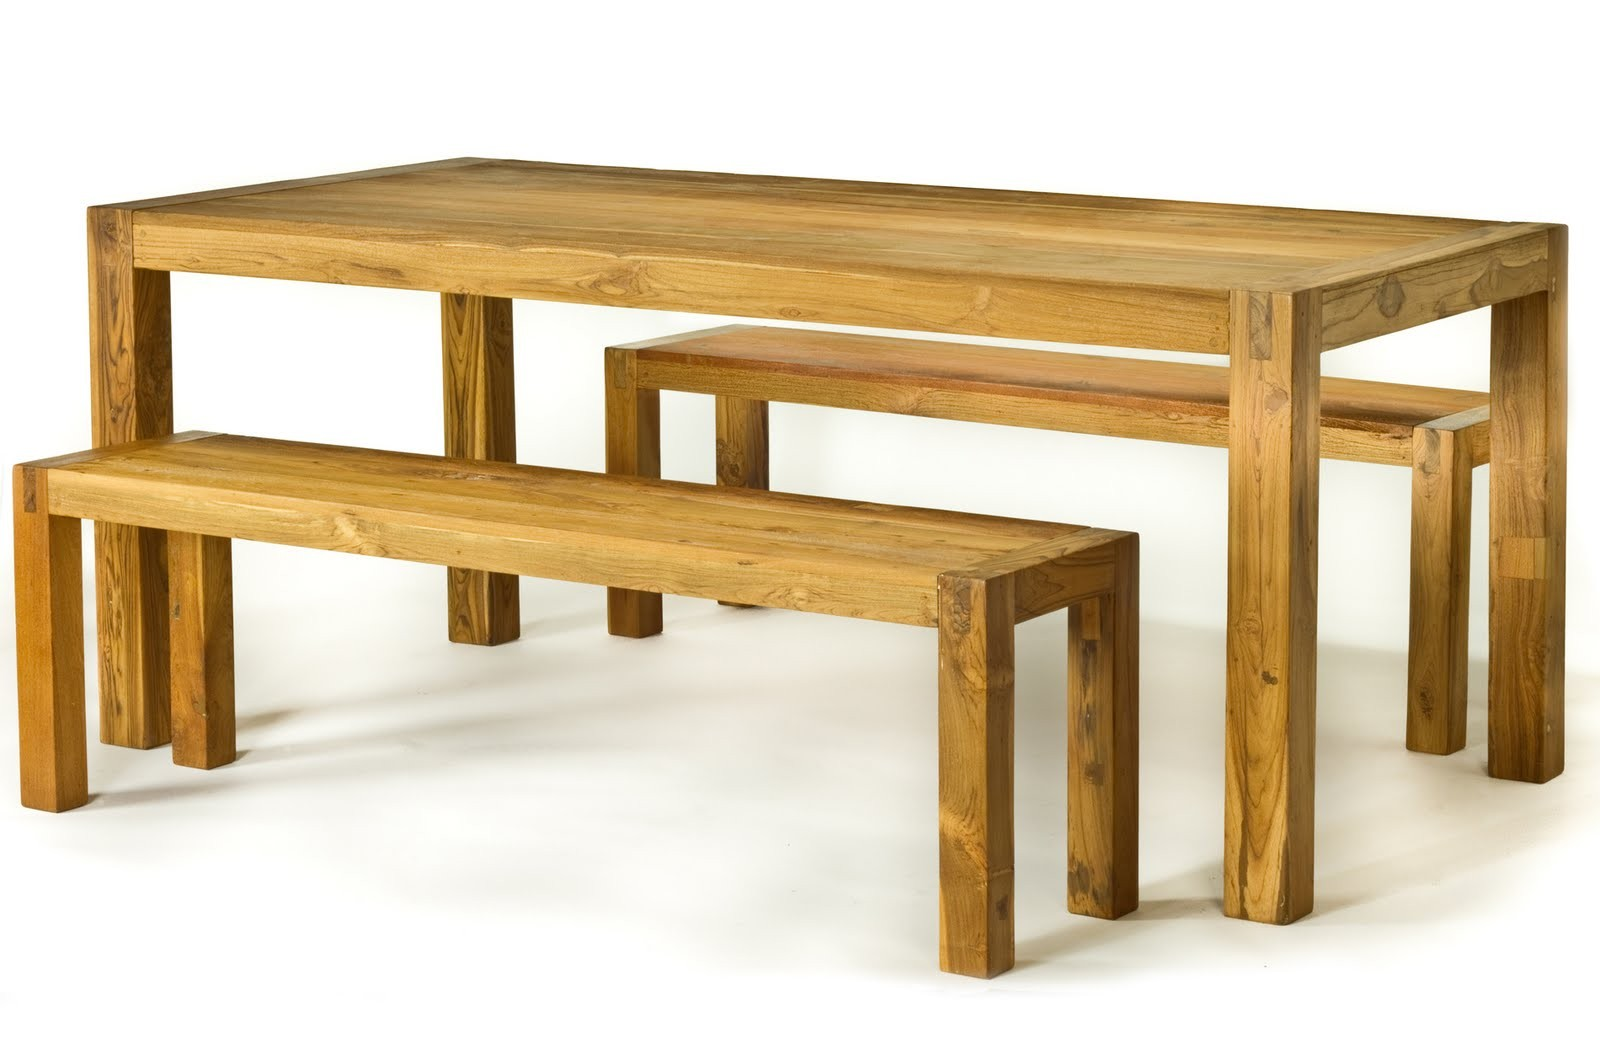 Baby green reclaimed wood dining tables for Reclaimed wood table designs